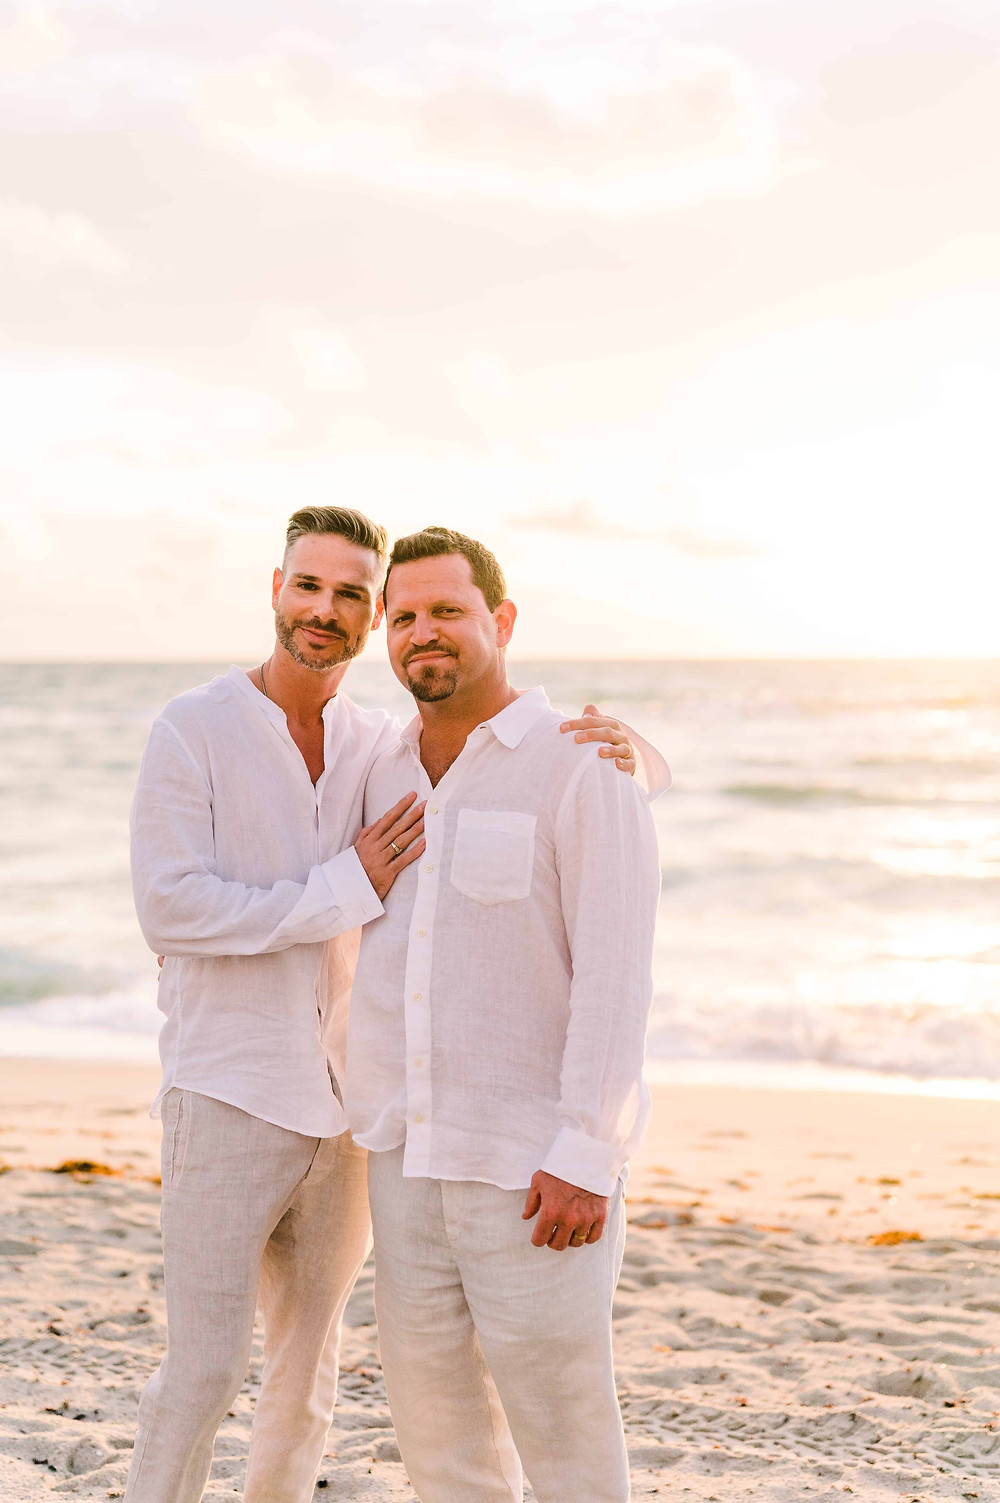 Two men have their arms around each other on the shore of a white sand beach at sunrise, wearing linen shirts at their elopement